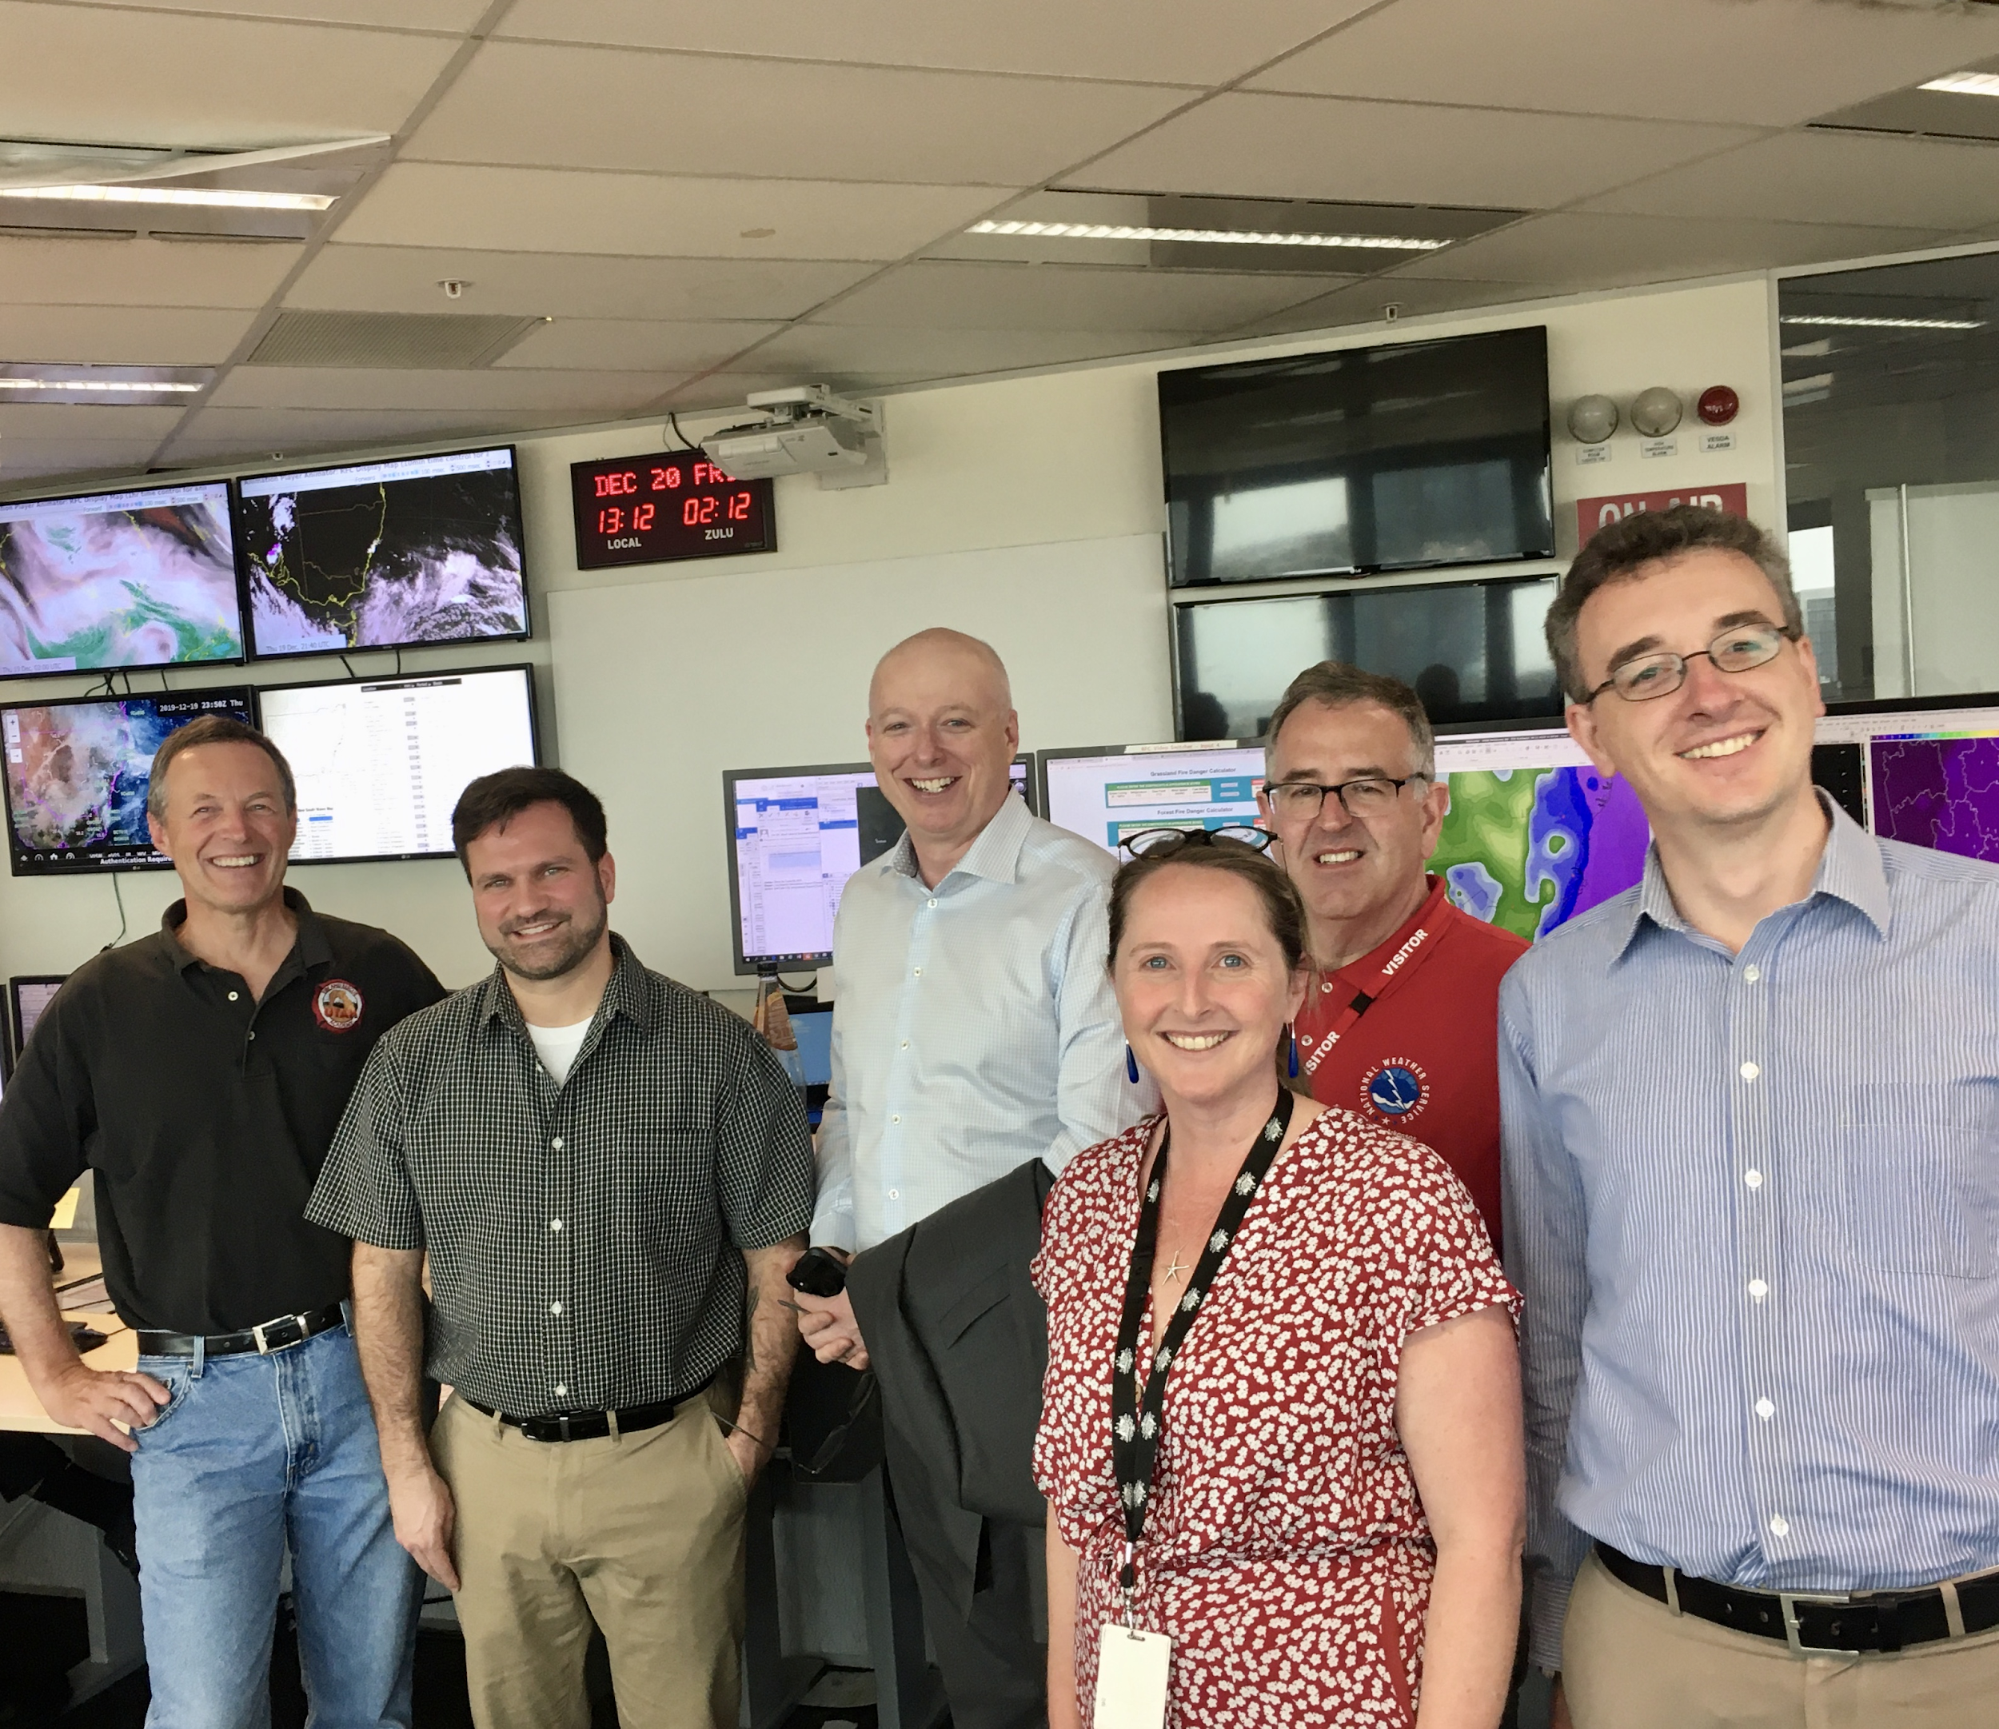 Several IMETs deployed to Australia to help with fire weather forecasting. From left to right: Mark Struthwolf (NWS Salt Lake City, UT), Mark Pellerito (NWS Binghamton, NY), Dr. Andrew Johnson (CEO and Director of Meteorology at the Australian Bureau of Meteorology), Jane Golding (Bureau of Meteorology), in red shirt Joe Goudsward (NWS Little Rock, AR), and Rob Taggart (Bureau of Meteorology). Location: Australian Bureau of Meteorology, Sydney. December 2019. Credit: NOAA